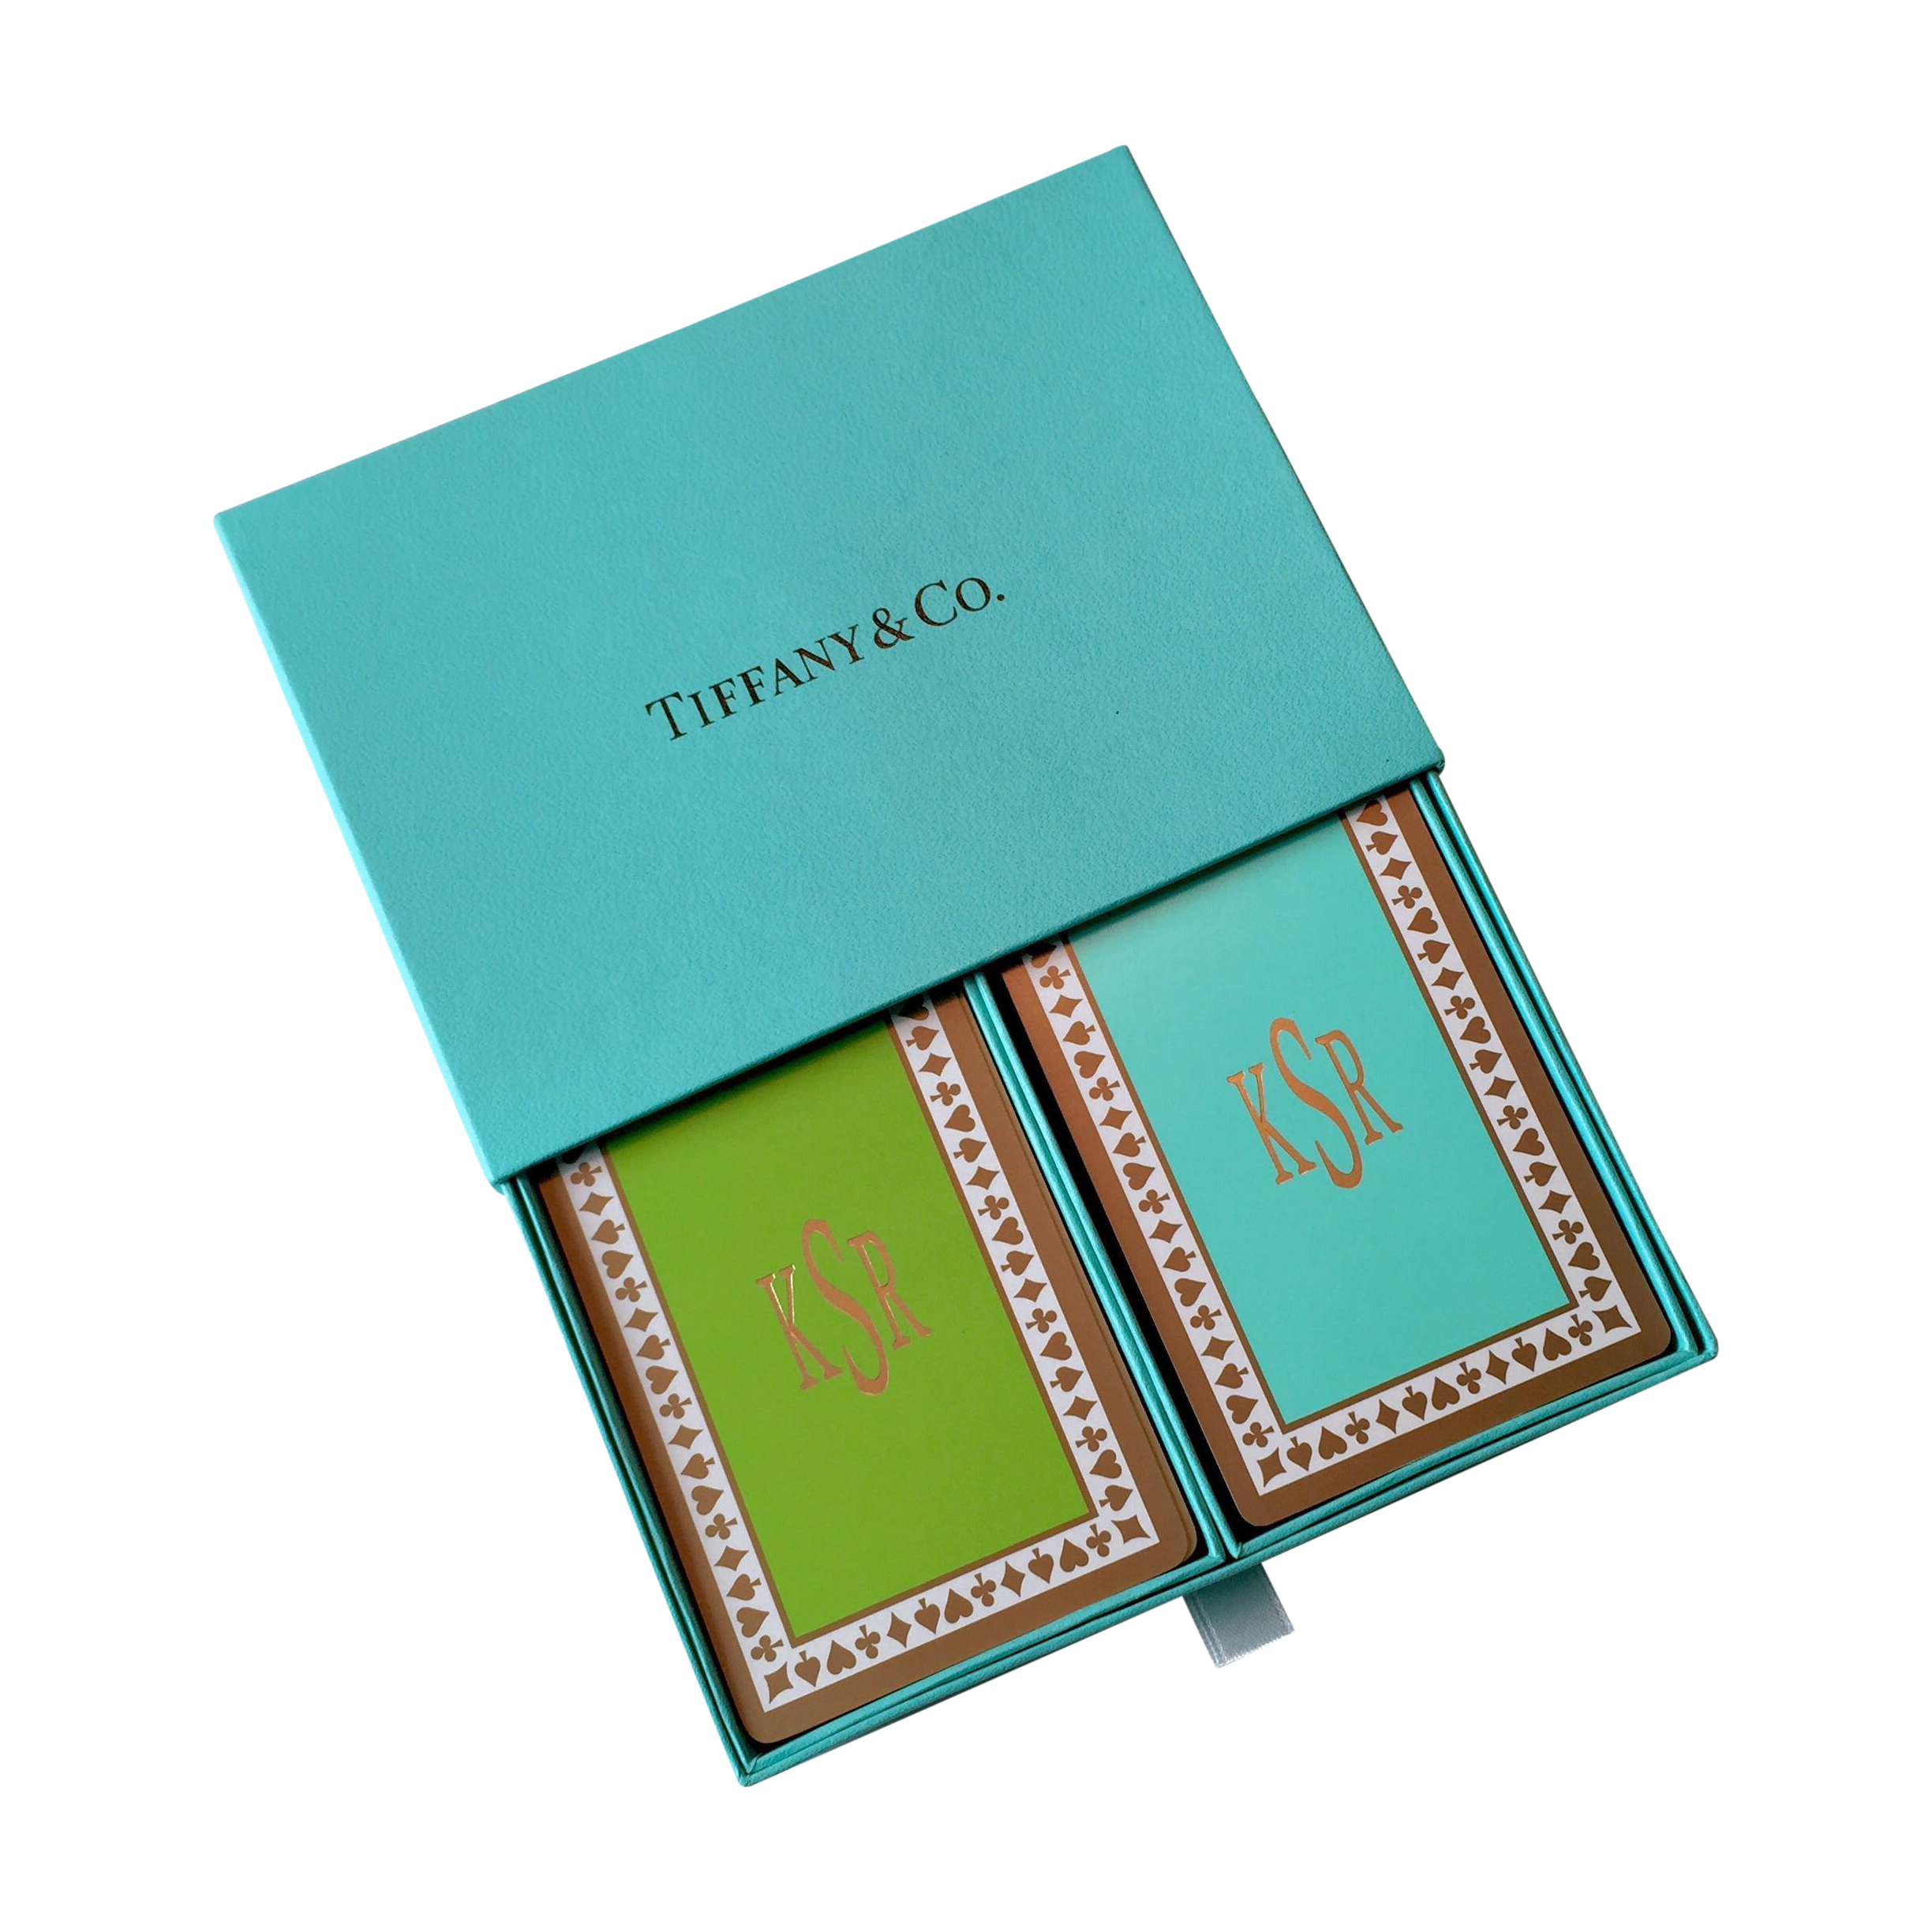 Tiffany Amp Co Monogrammed Playing Card 2 Deck Set Chairish